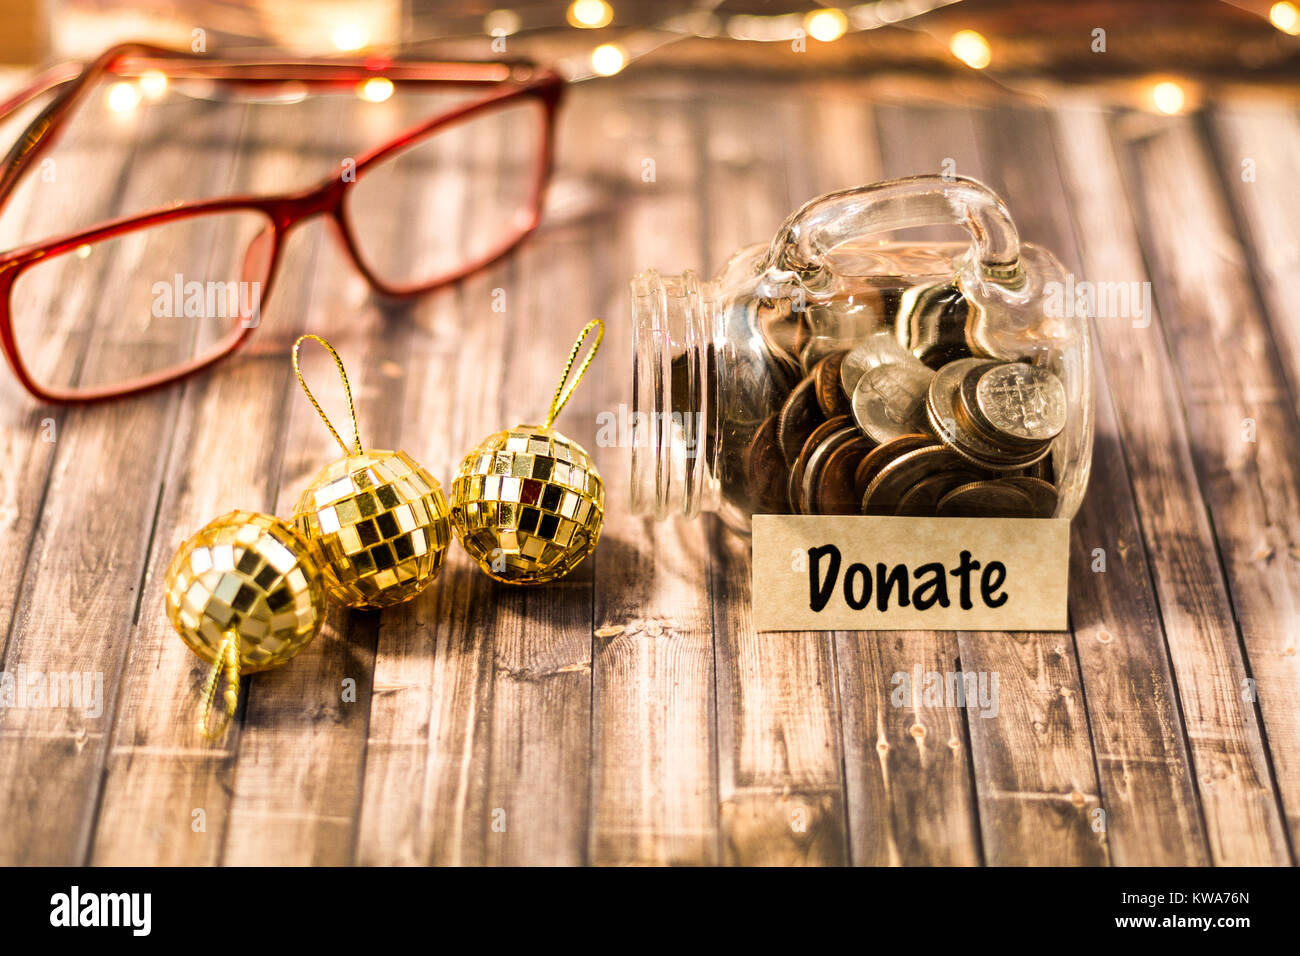 Donate money jar savings plan and giving motivational concept on wooden board - Stock Image